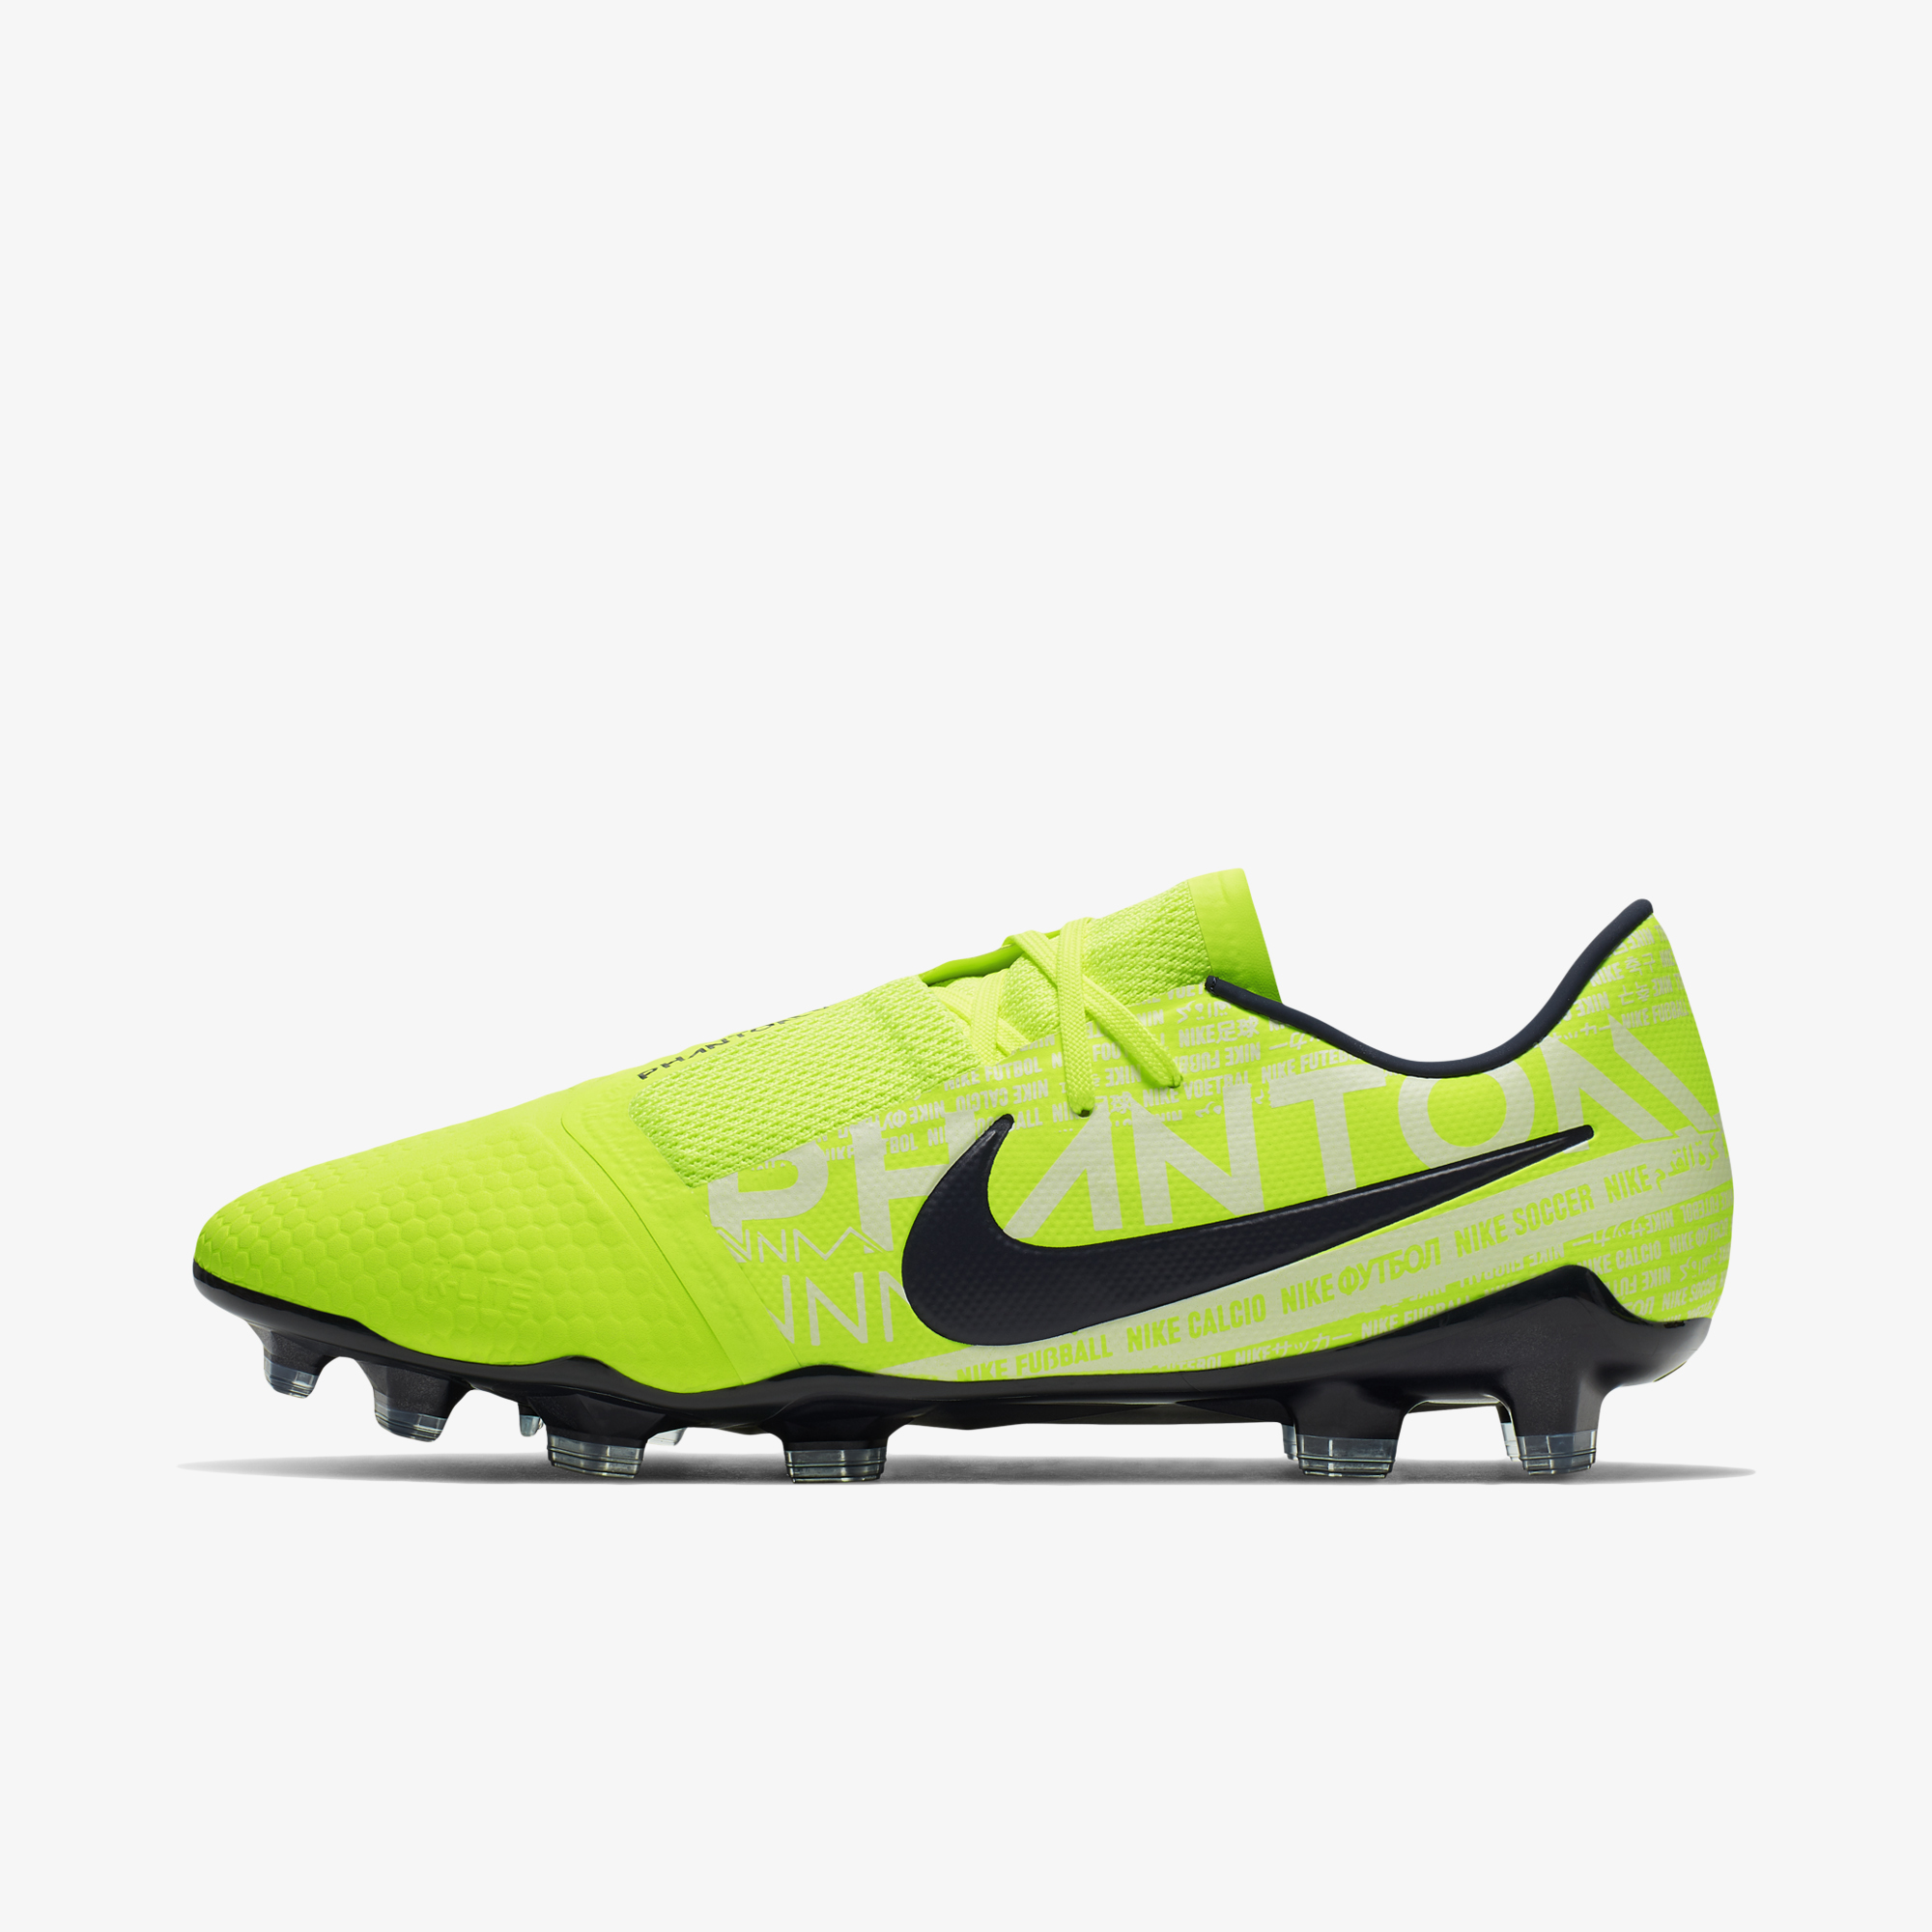 92 Best 축구 images in 2019  Football boots, Soccer cleats